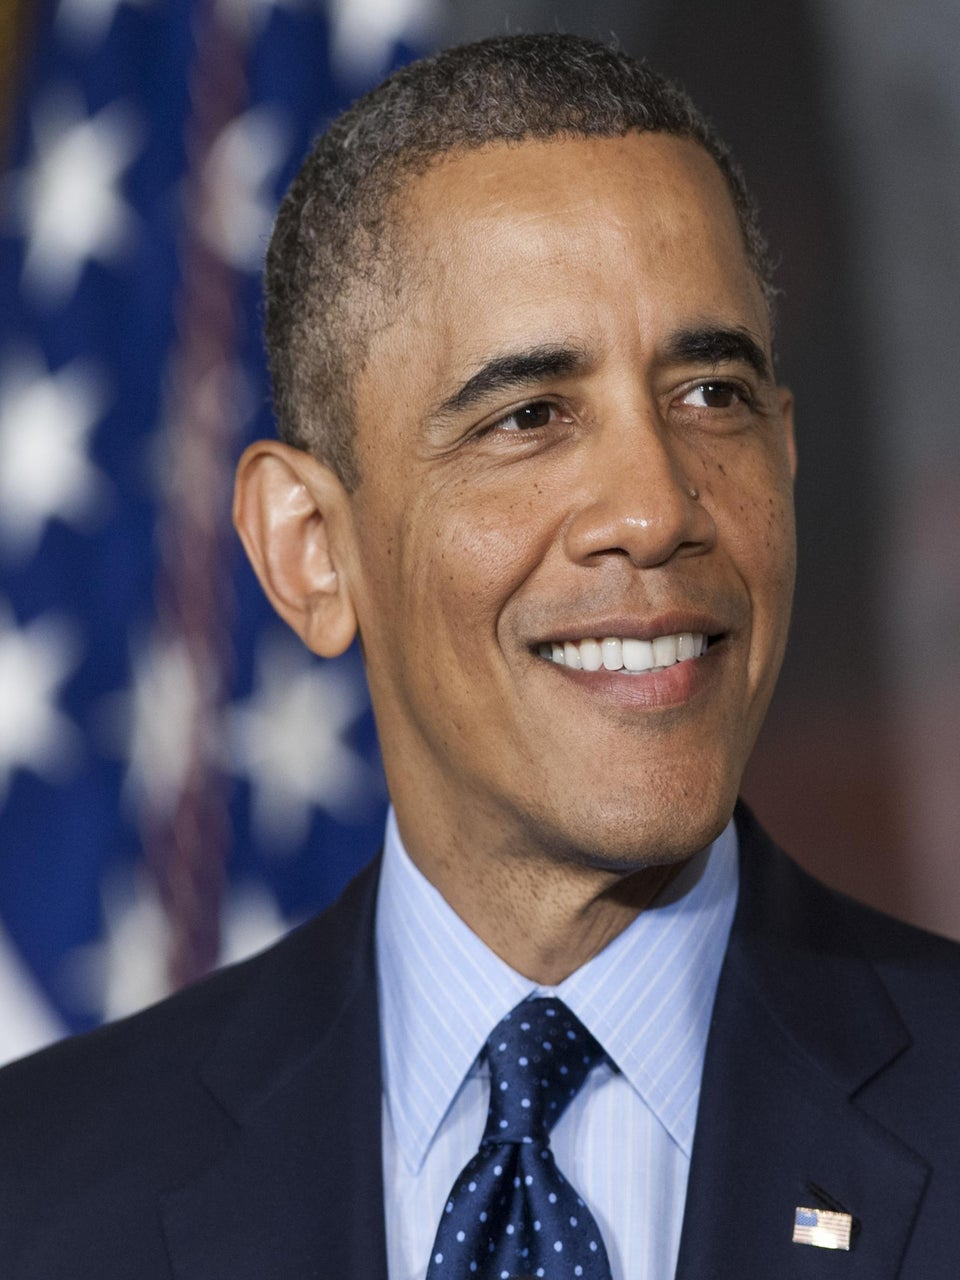 City of Chicago Names High School After President Obama